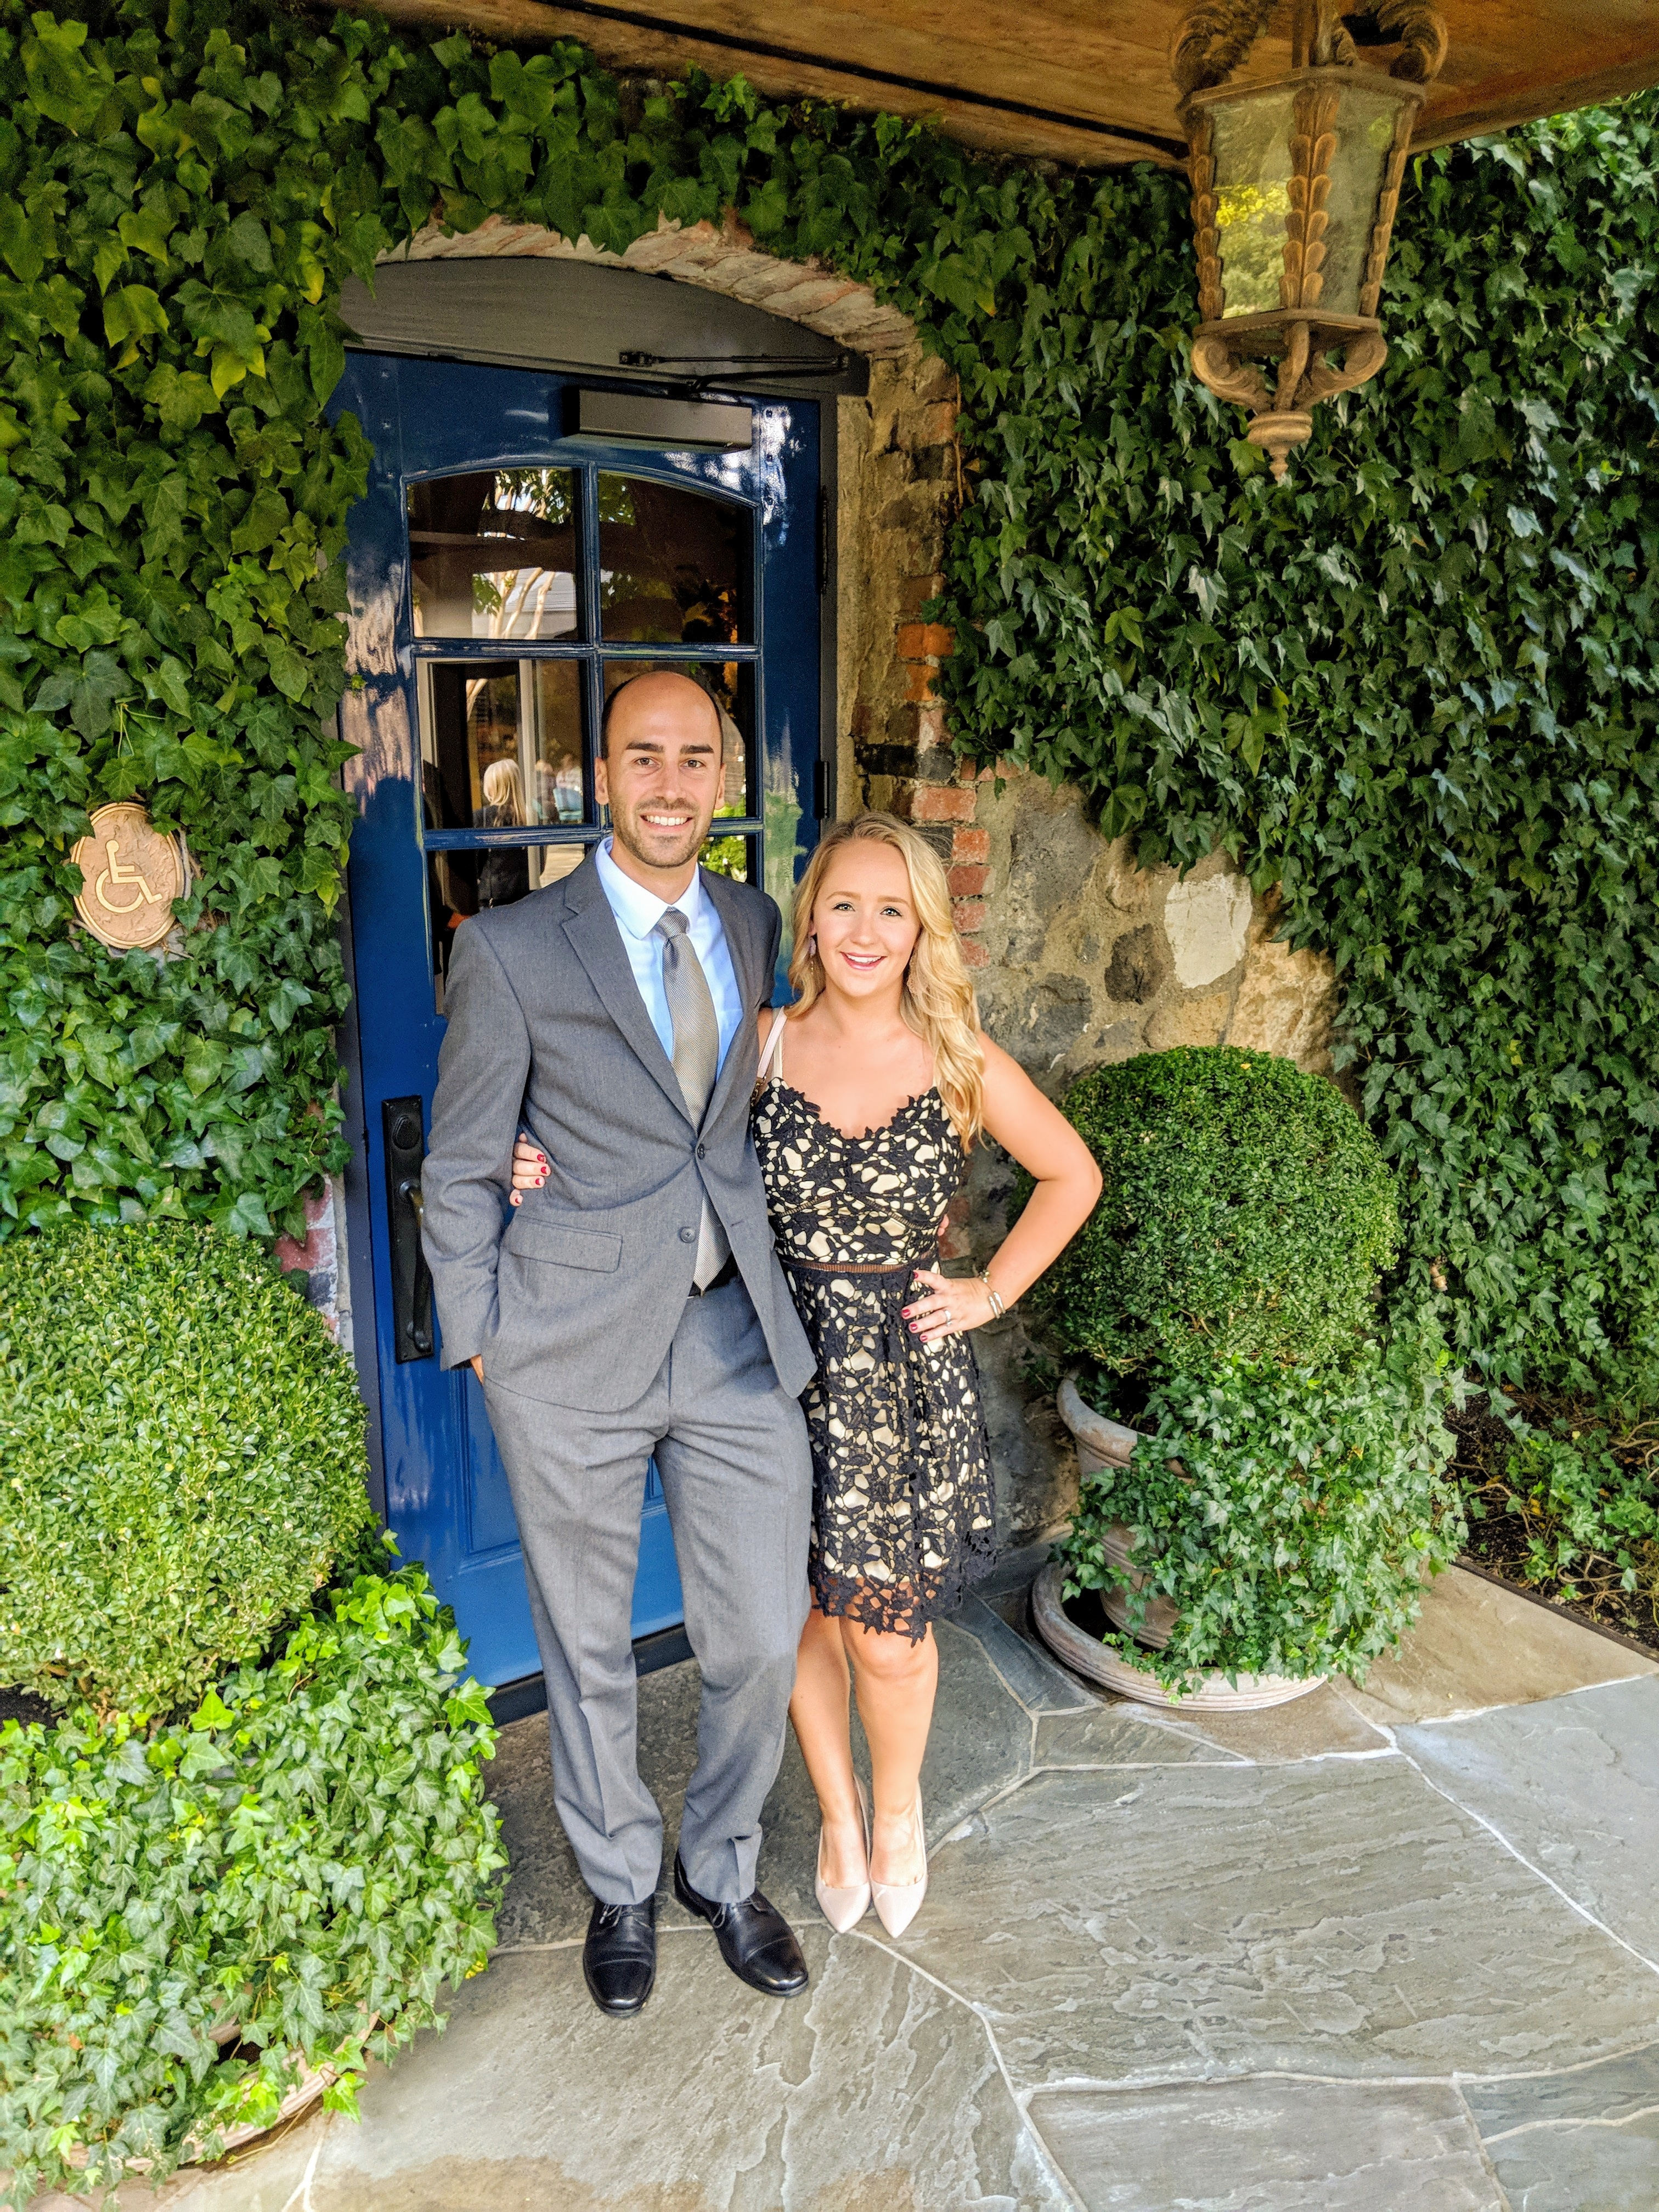 Our Experience at The French Laundry ...